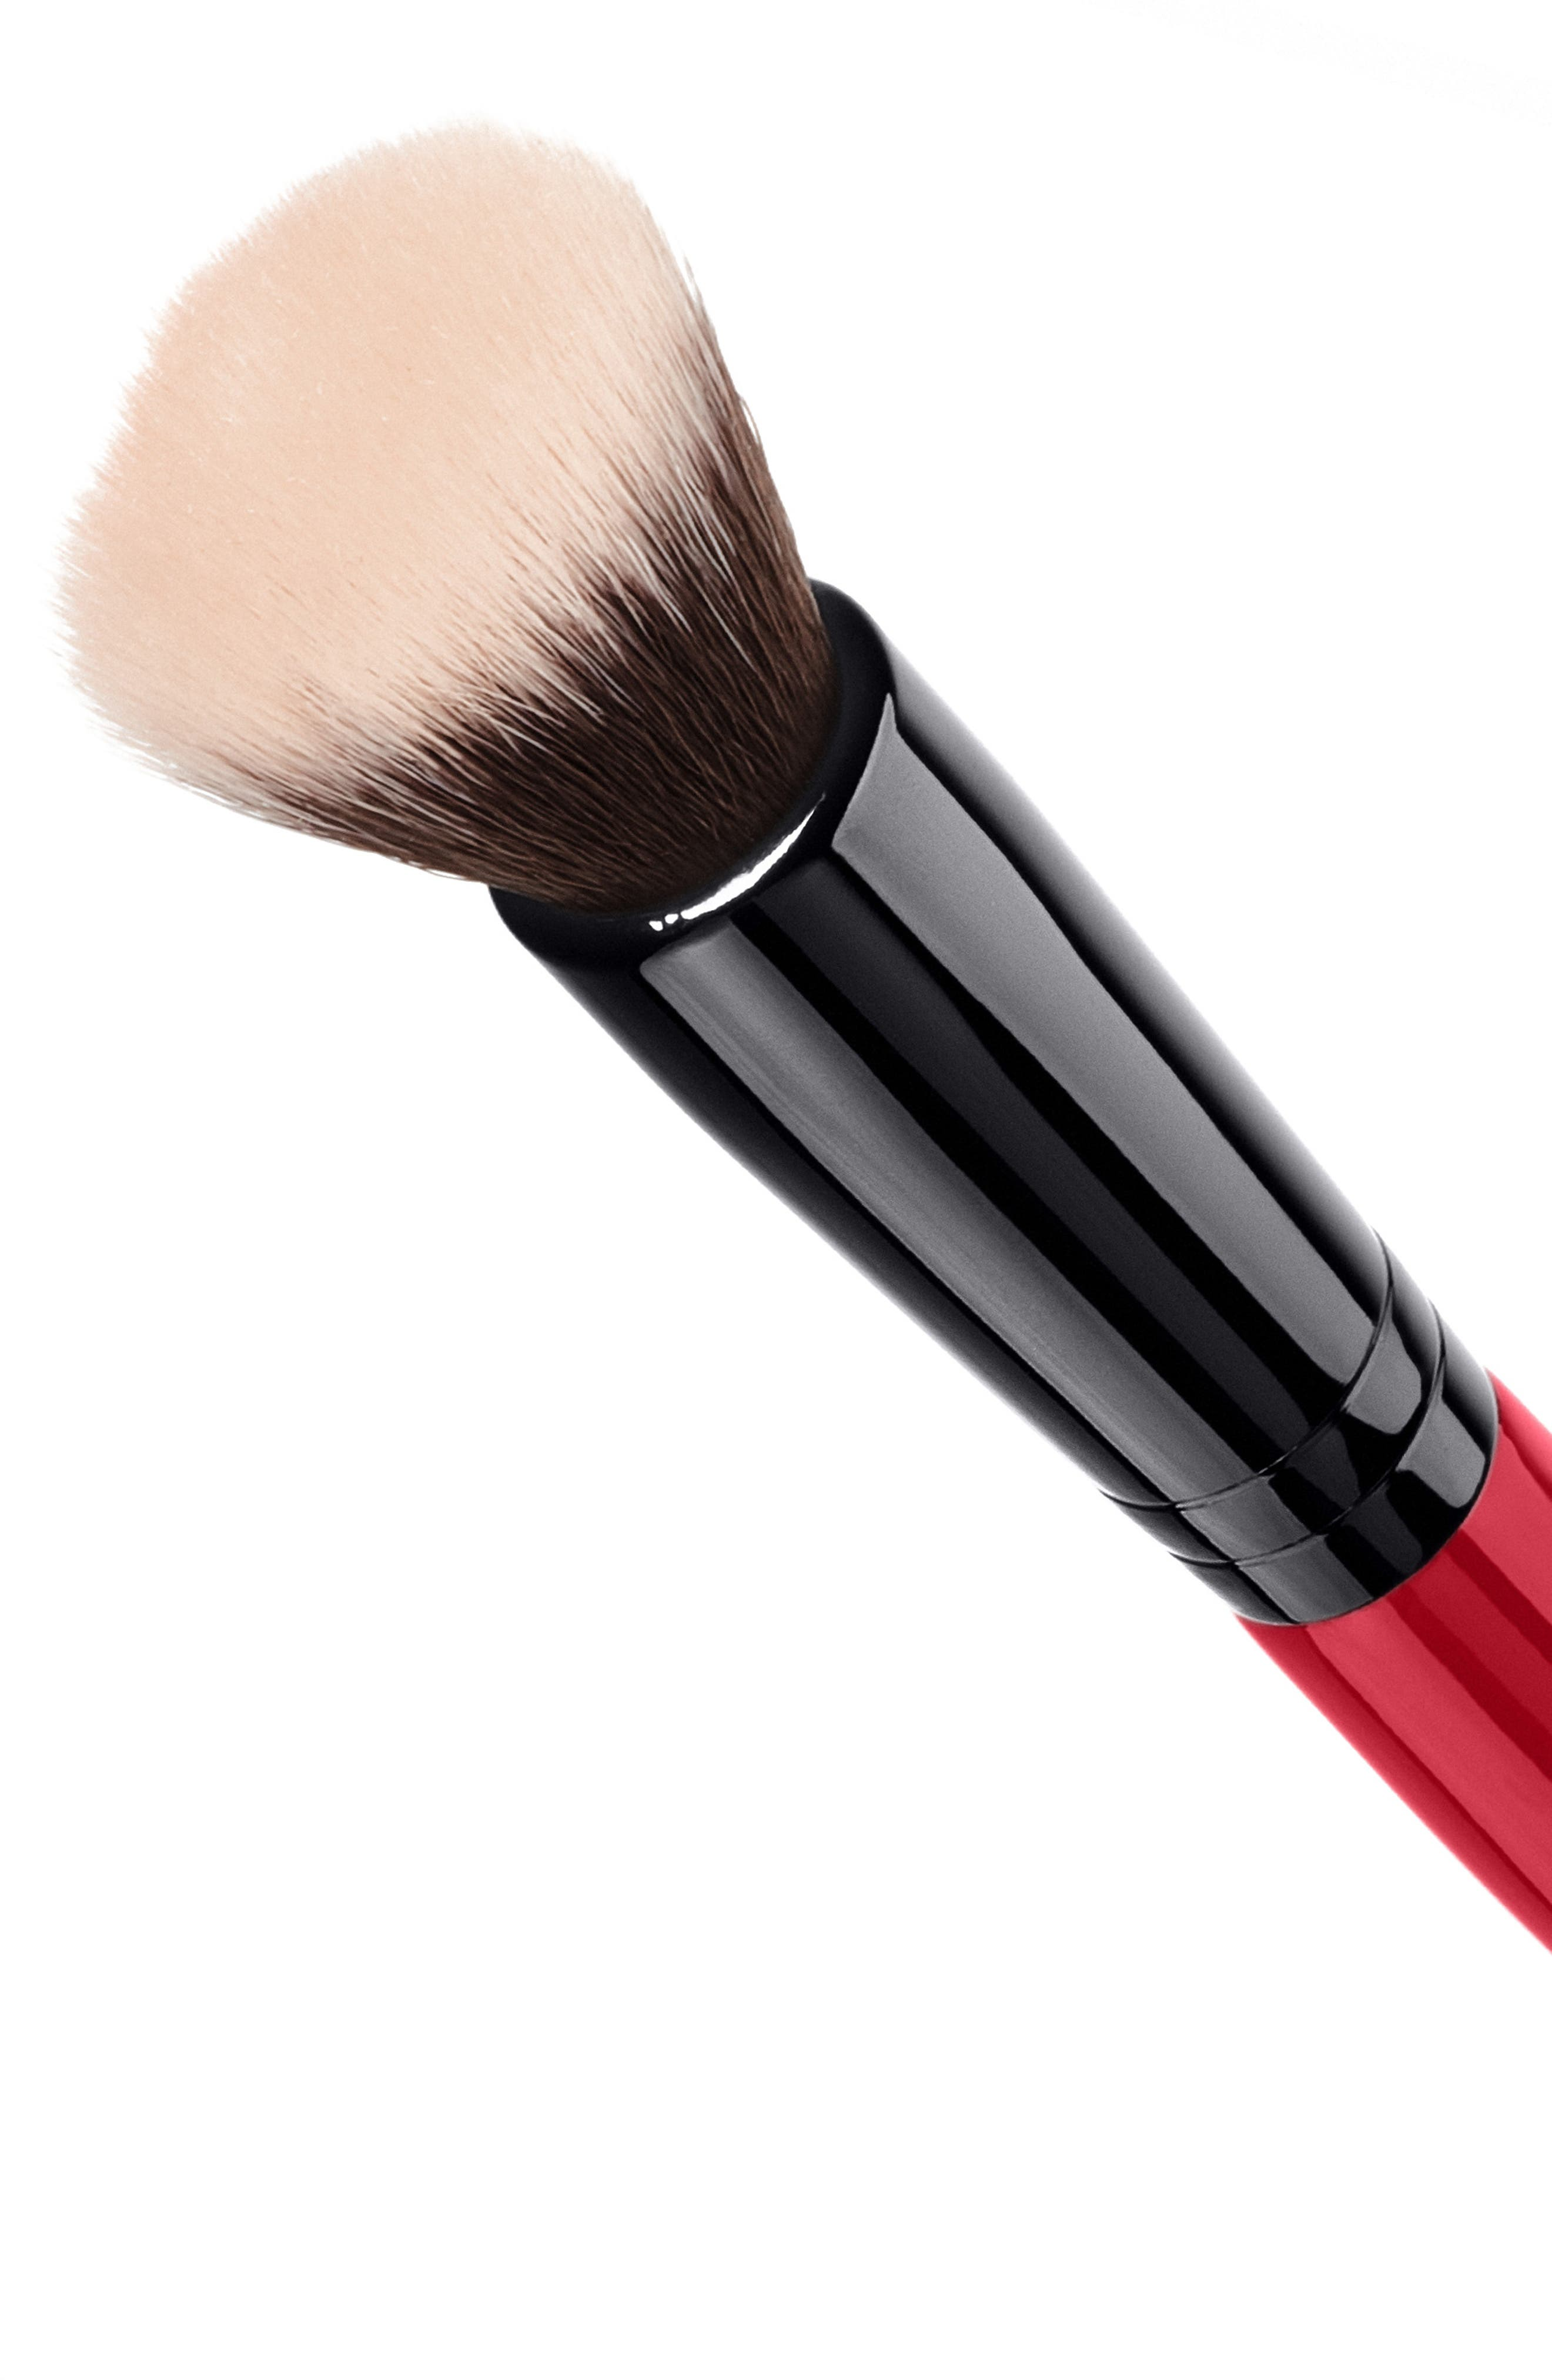 Cream Cheek Brush,                             Alternate thumbnail 2, color,                             000